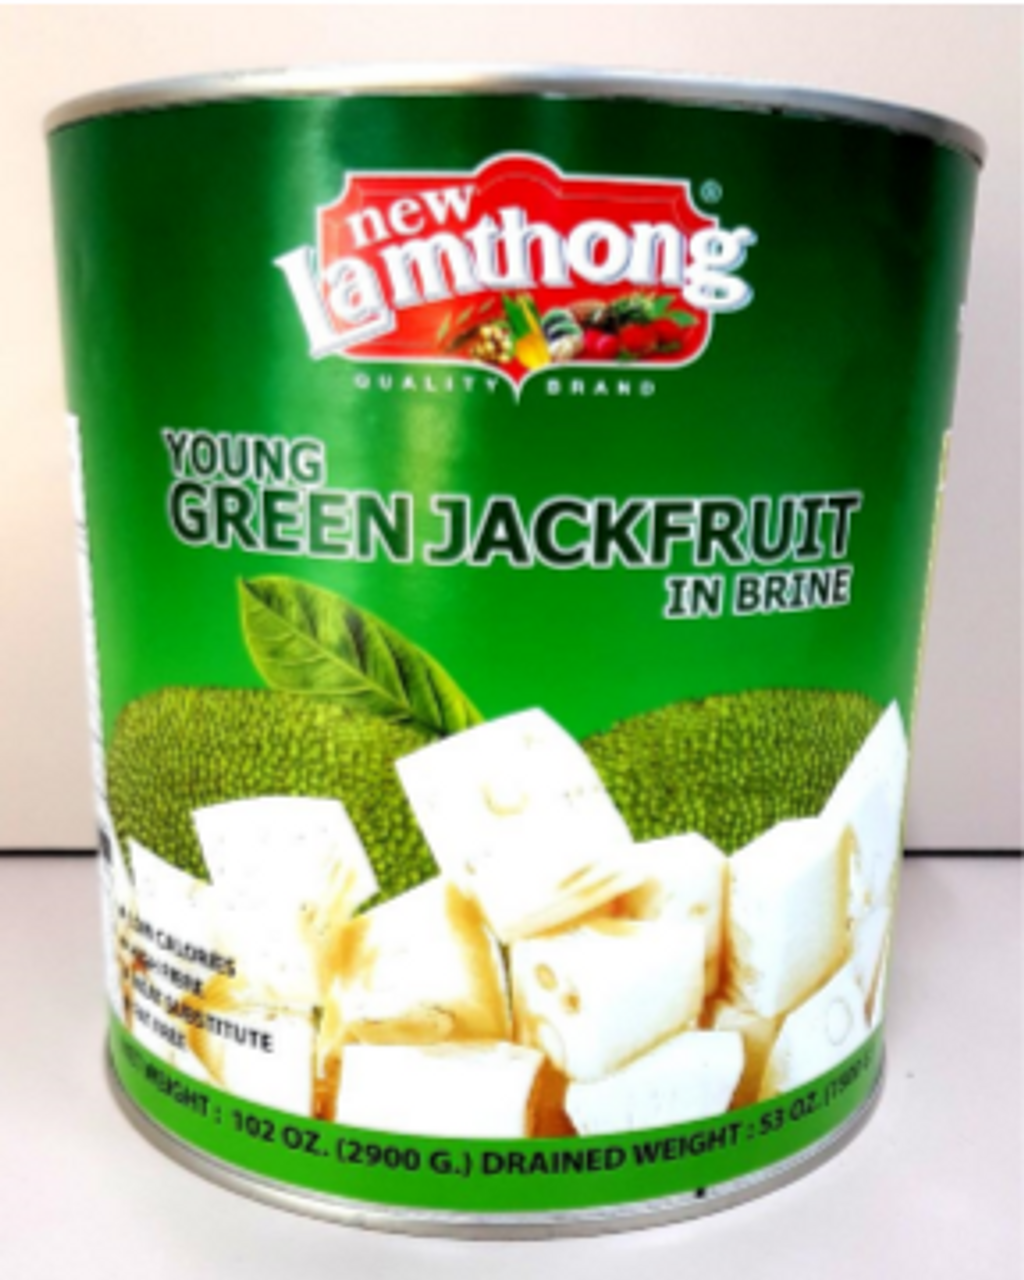 YOUNG GREEN JACKFRUIT IN BRINE 540g